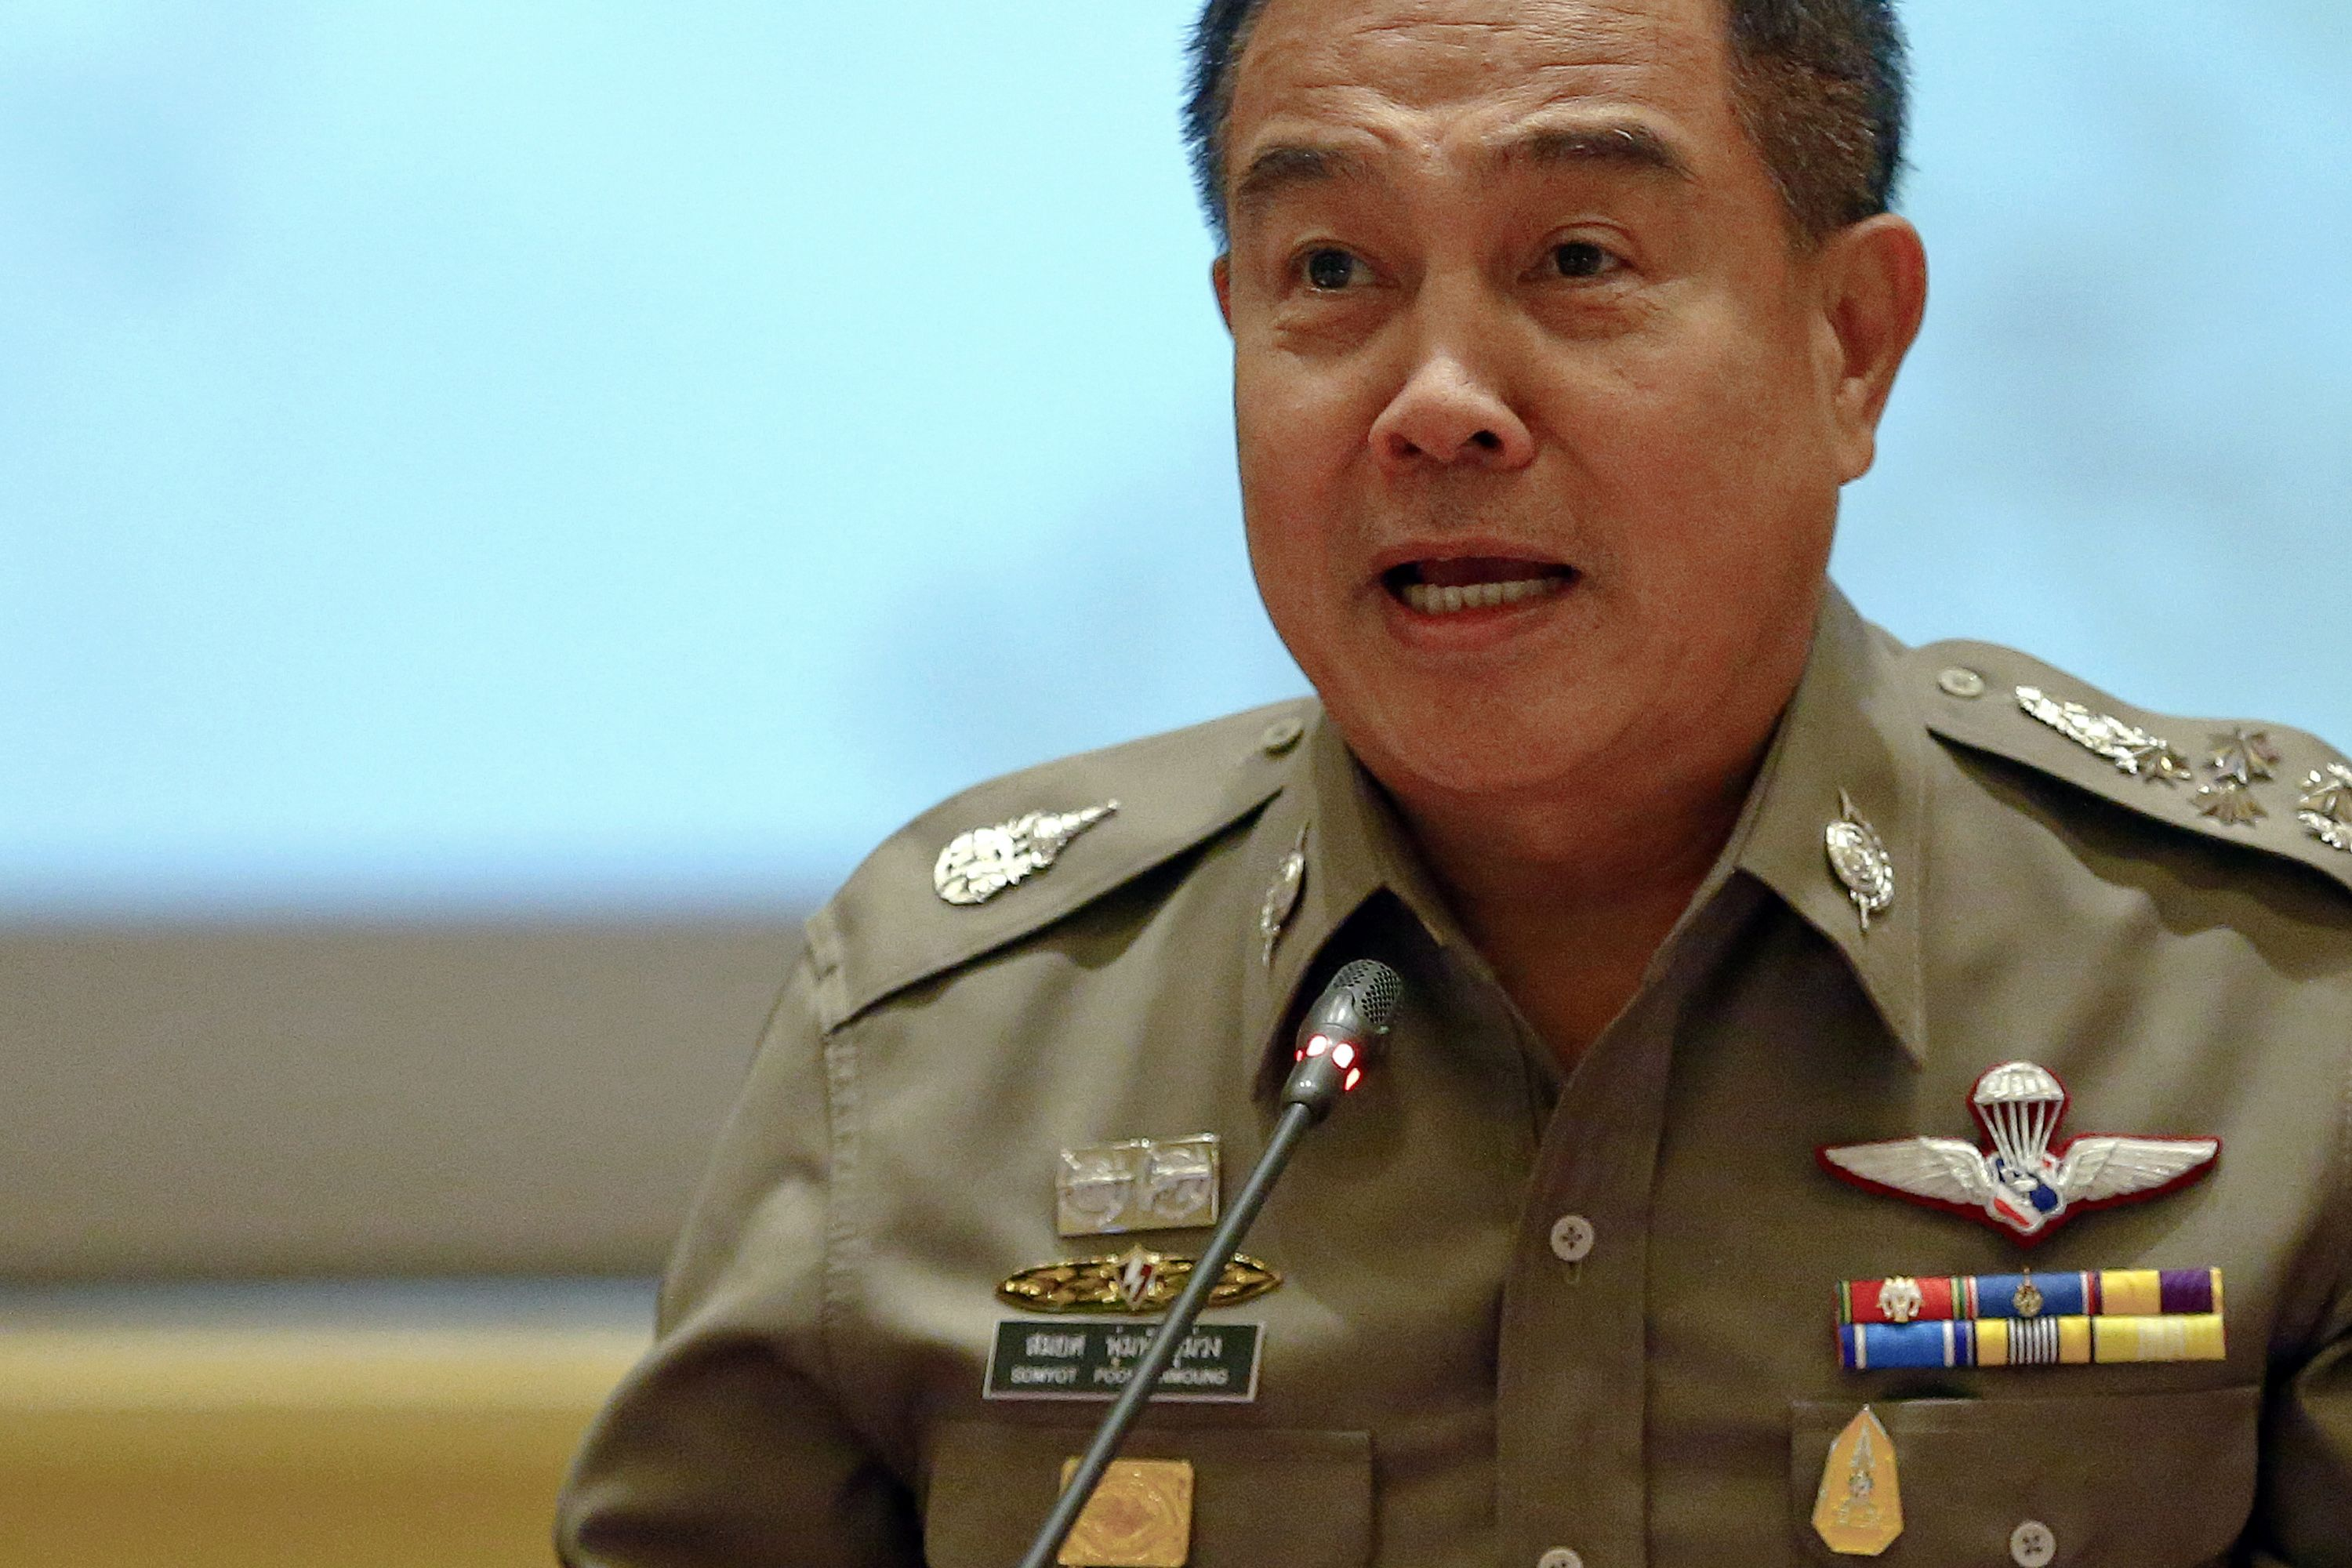 Thai PM Stands by Investigation into Murders of British Tourists